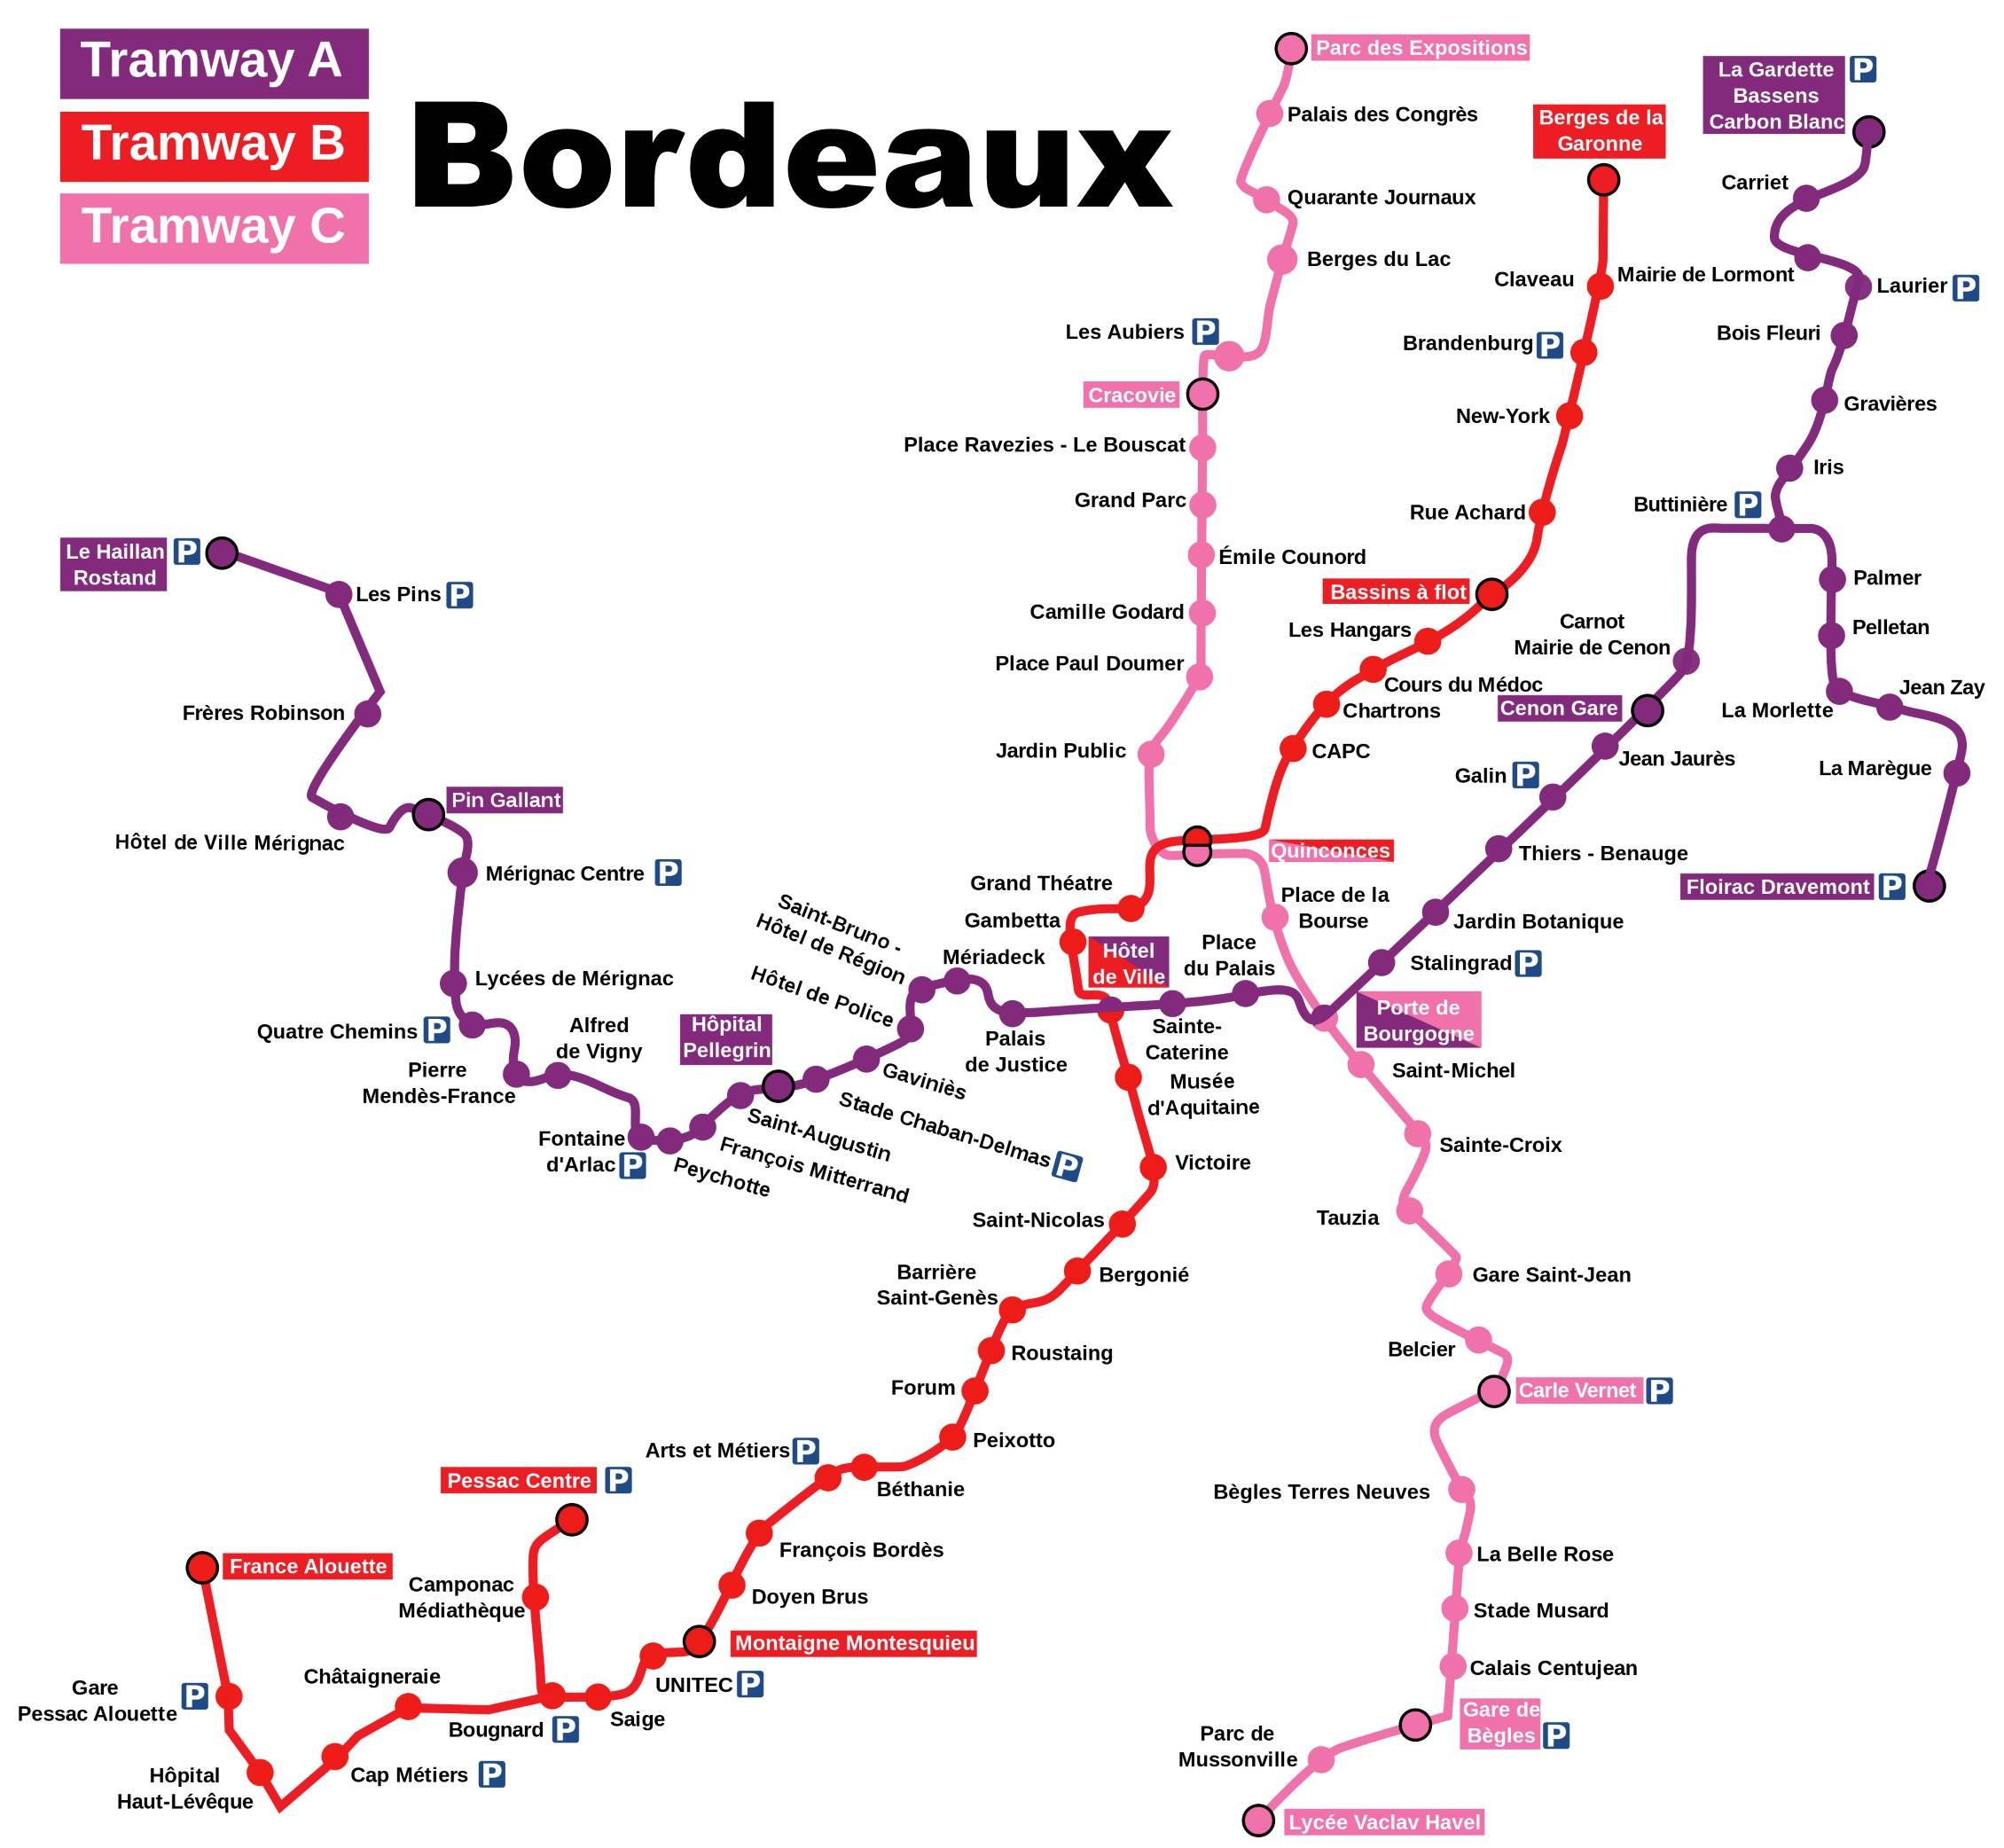 Carte du tramway à Bordeaux